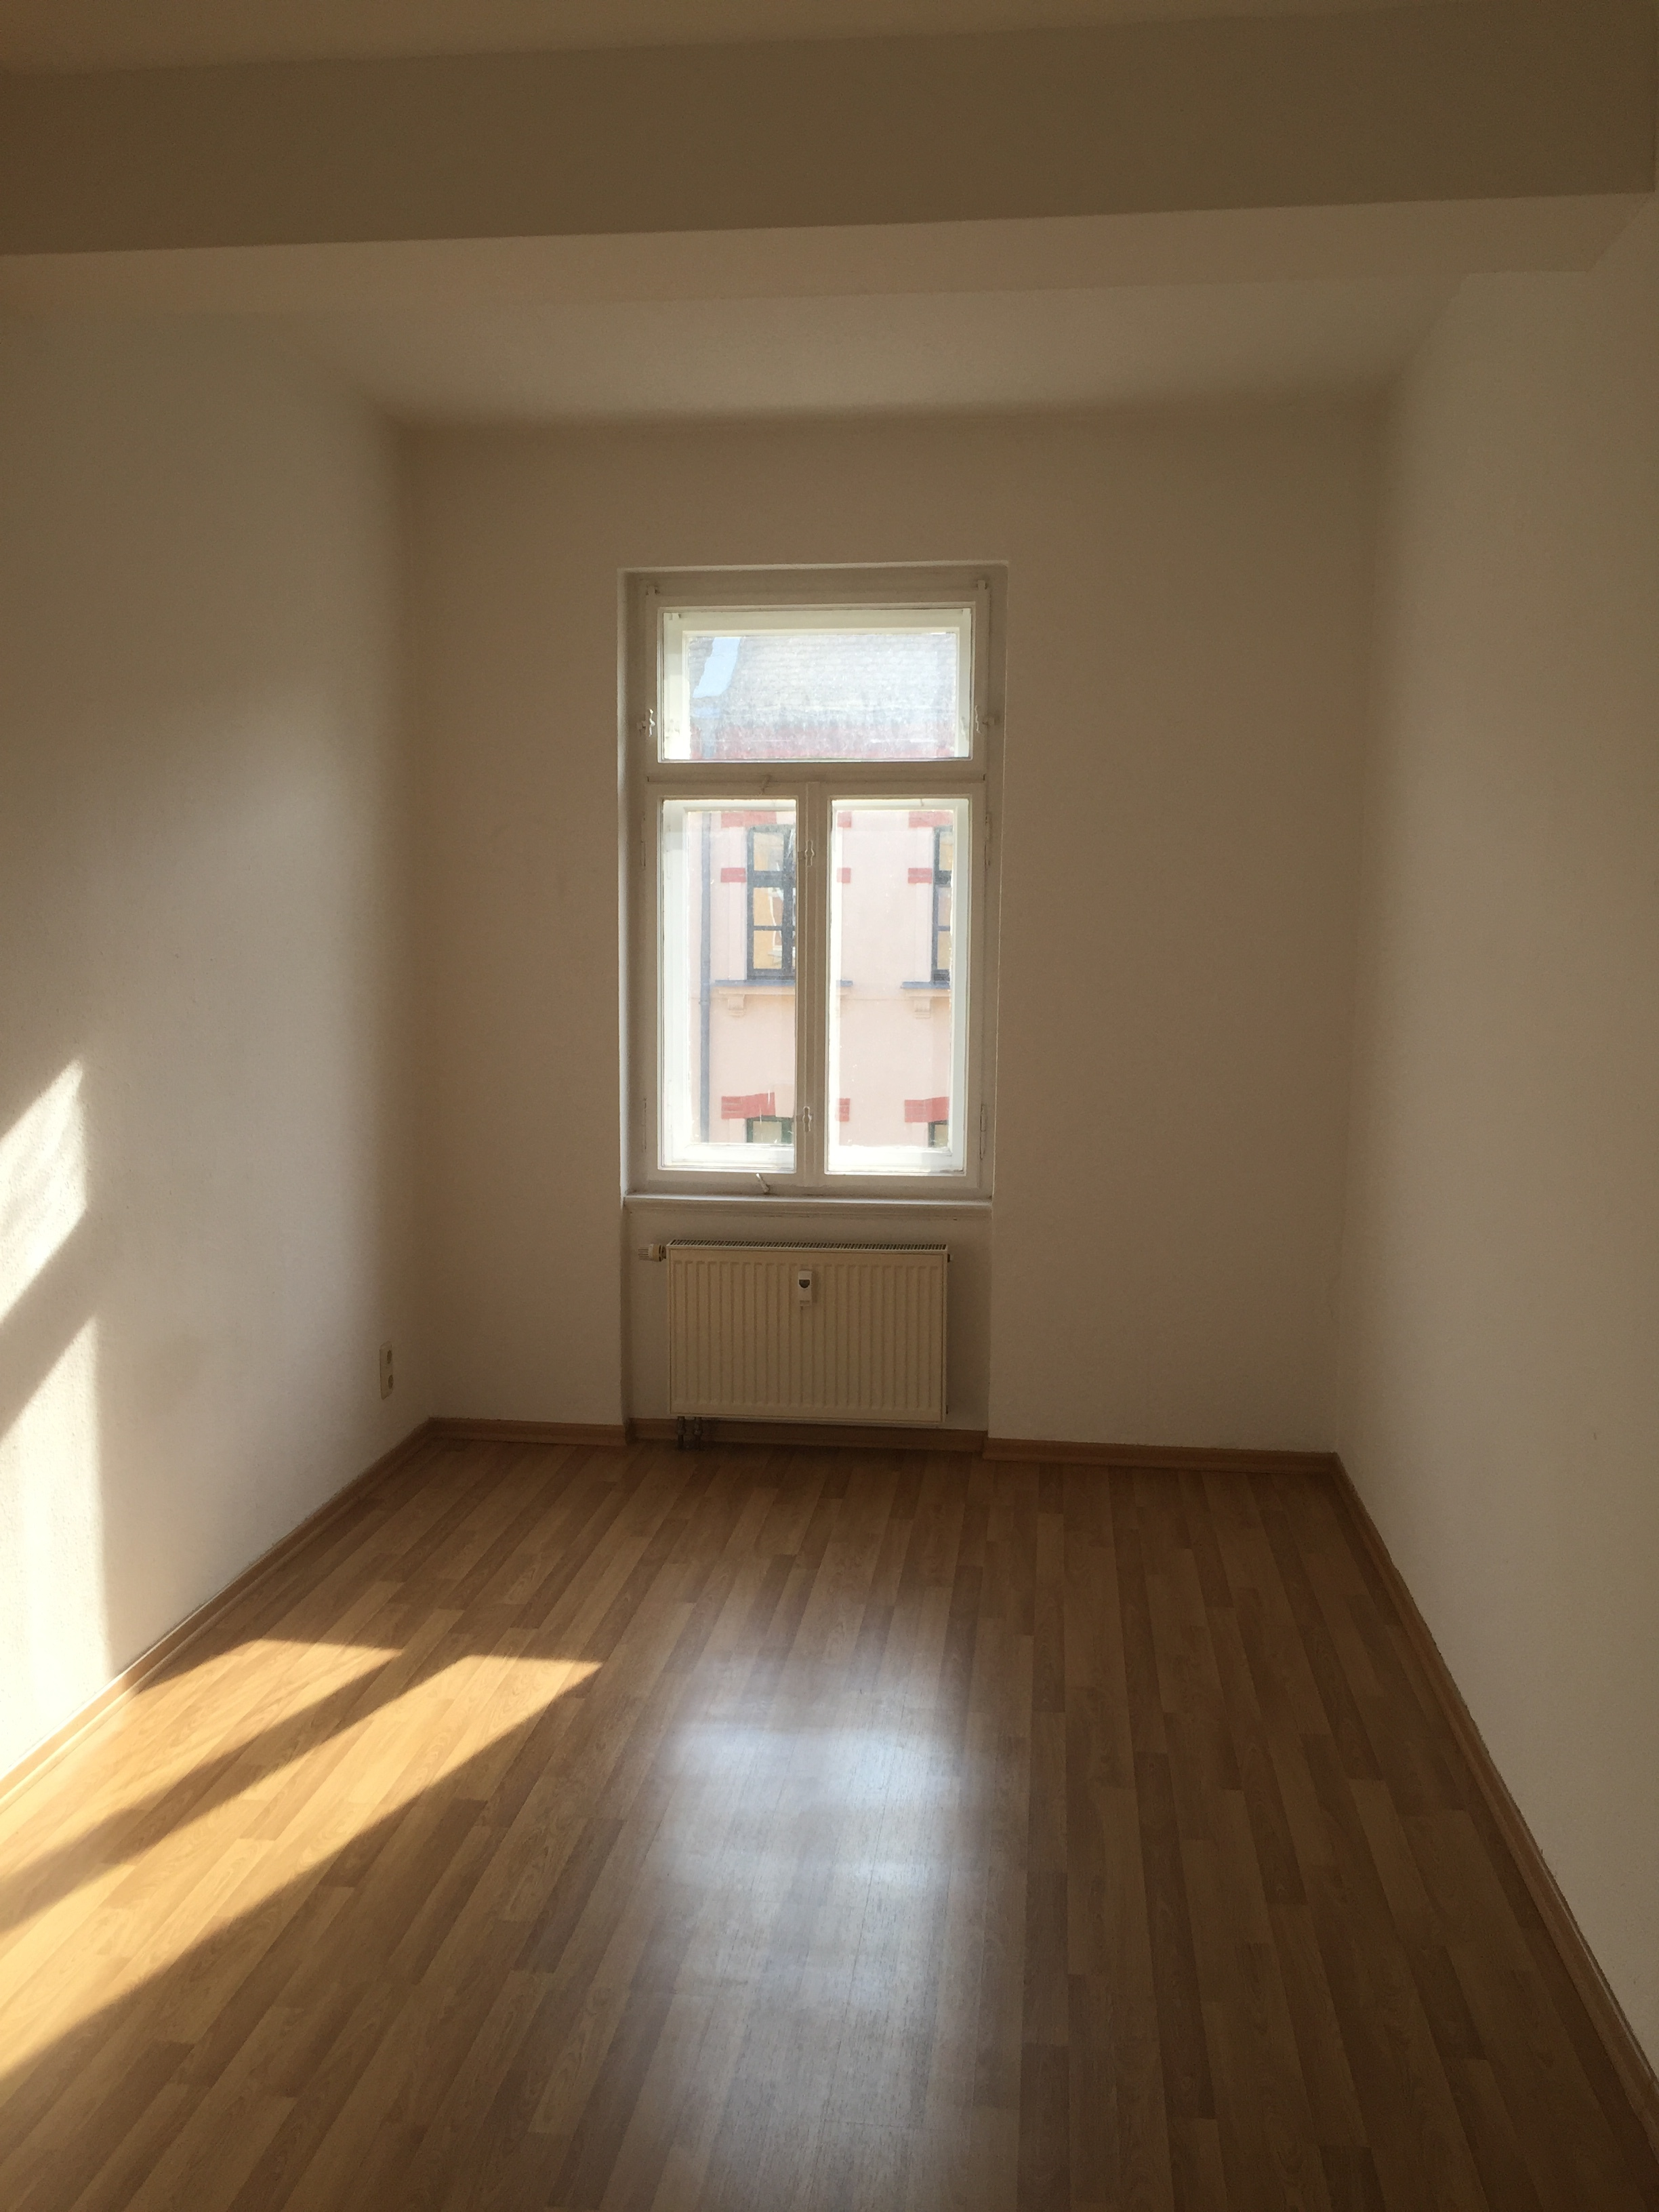 Bad Hell Gefliest 2 Bed Apartment At Hahnemannstraße 11 04177 Leipzig